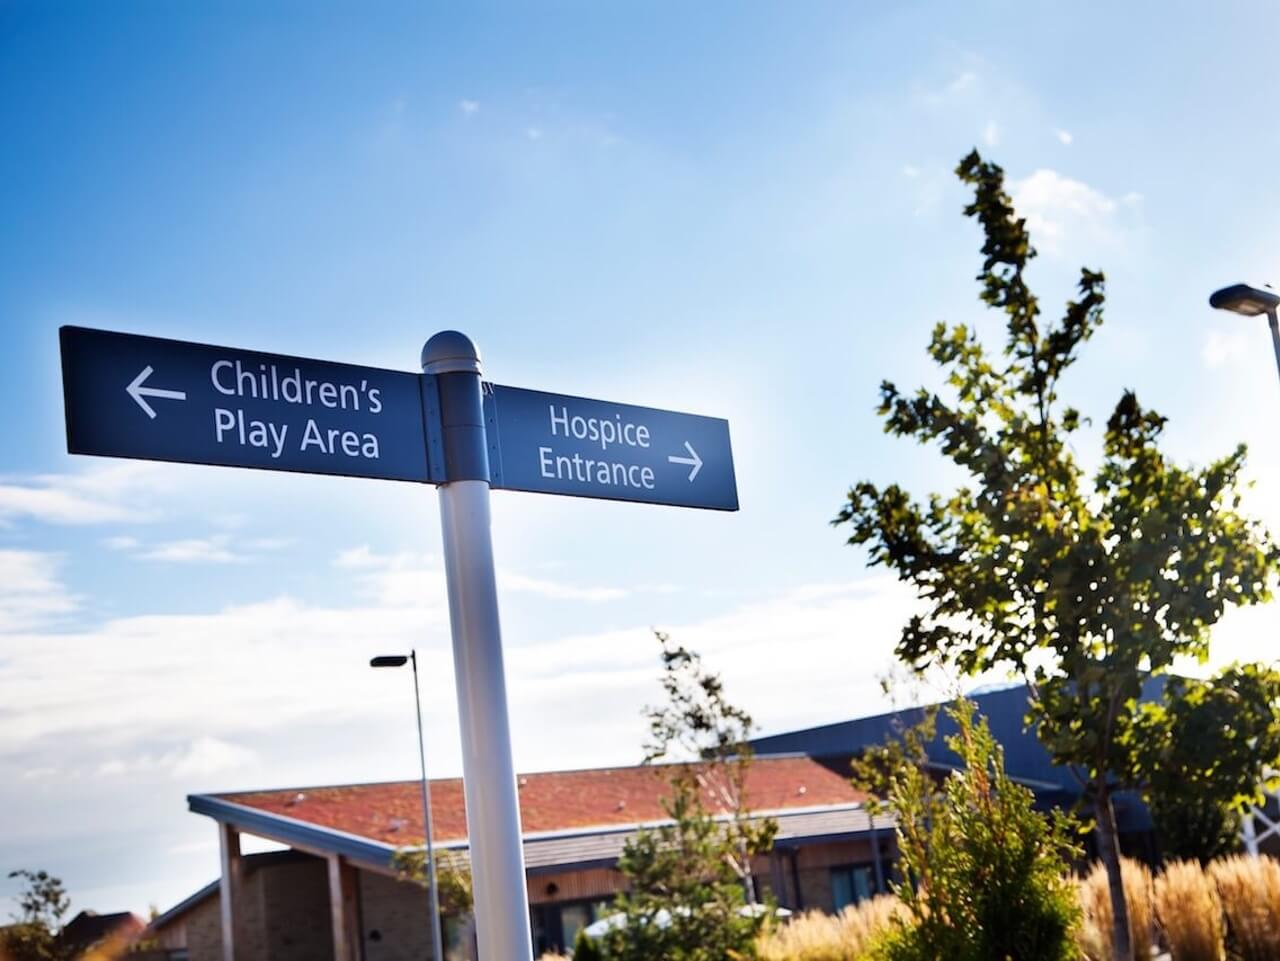 Design-led wayfinding at St Benedict's Hospice encourages people to explore the beautiful grounds and seating areas